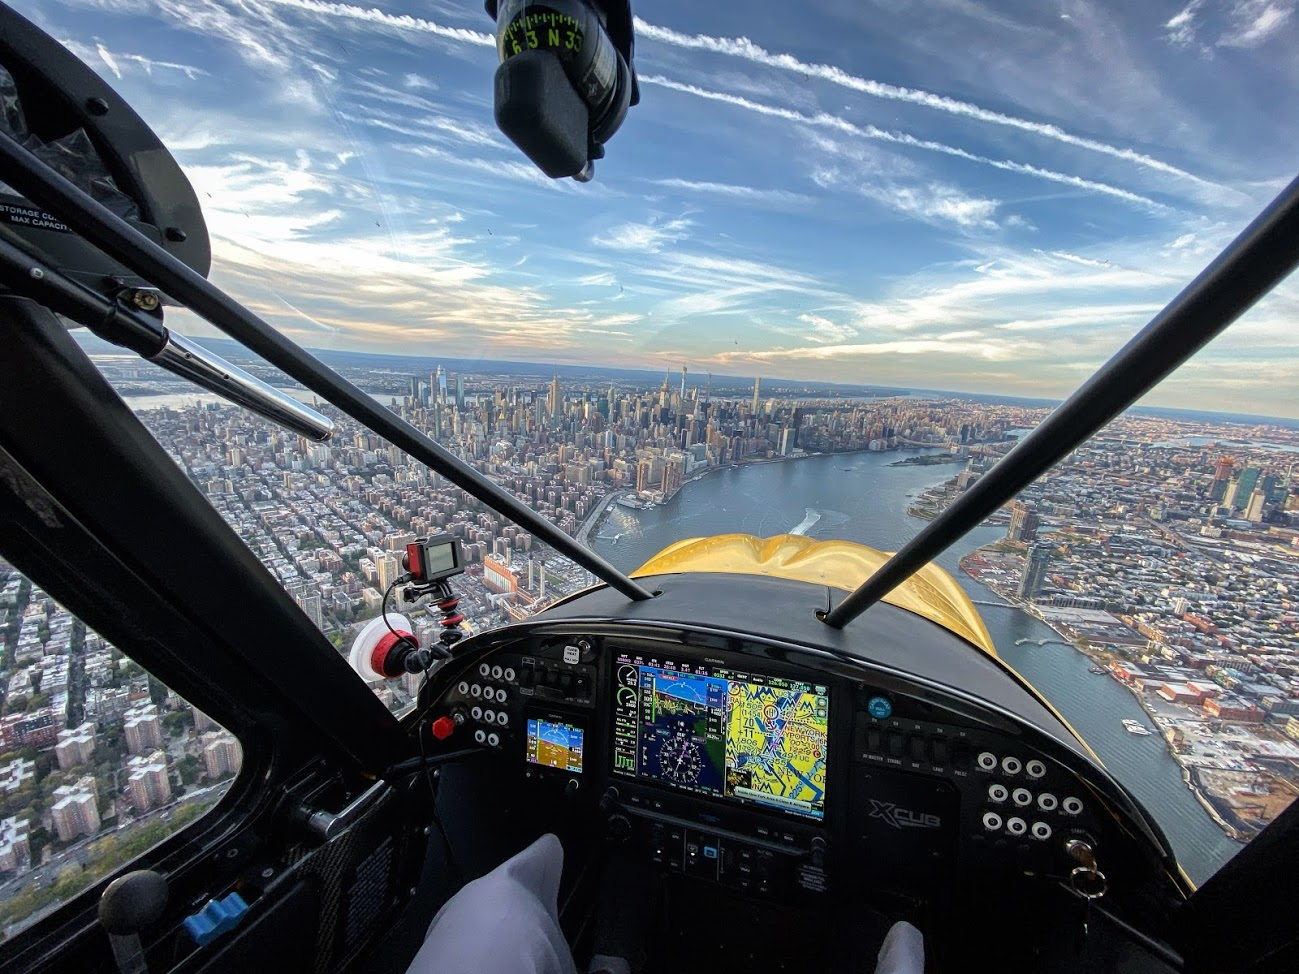 Plane & Pilot Photo Of The Week: A View Of Manhattan From An X-Cub